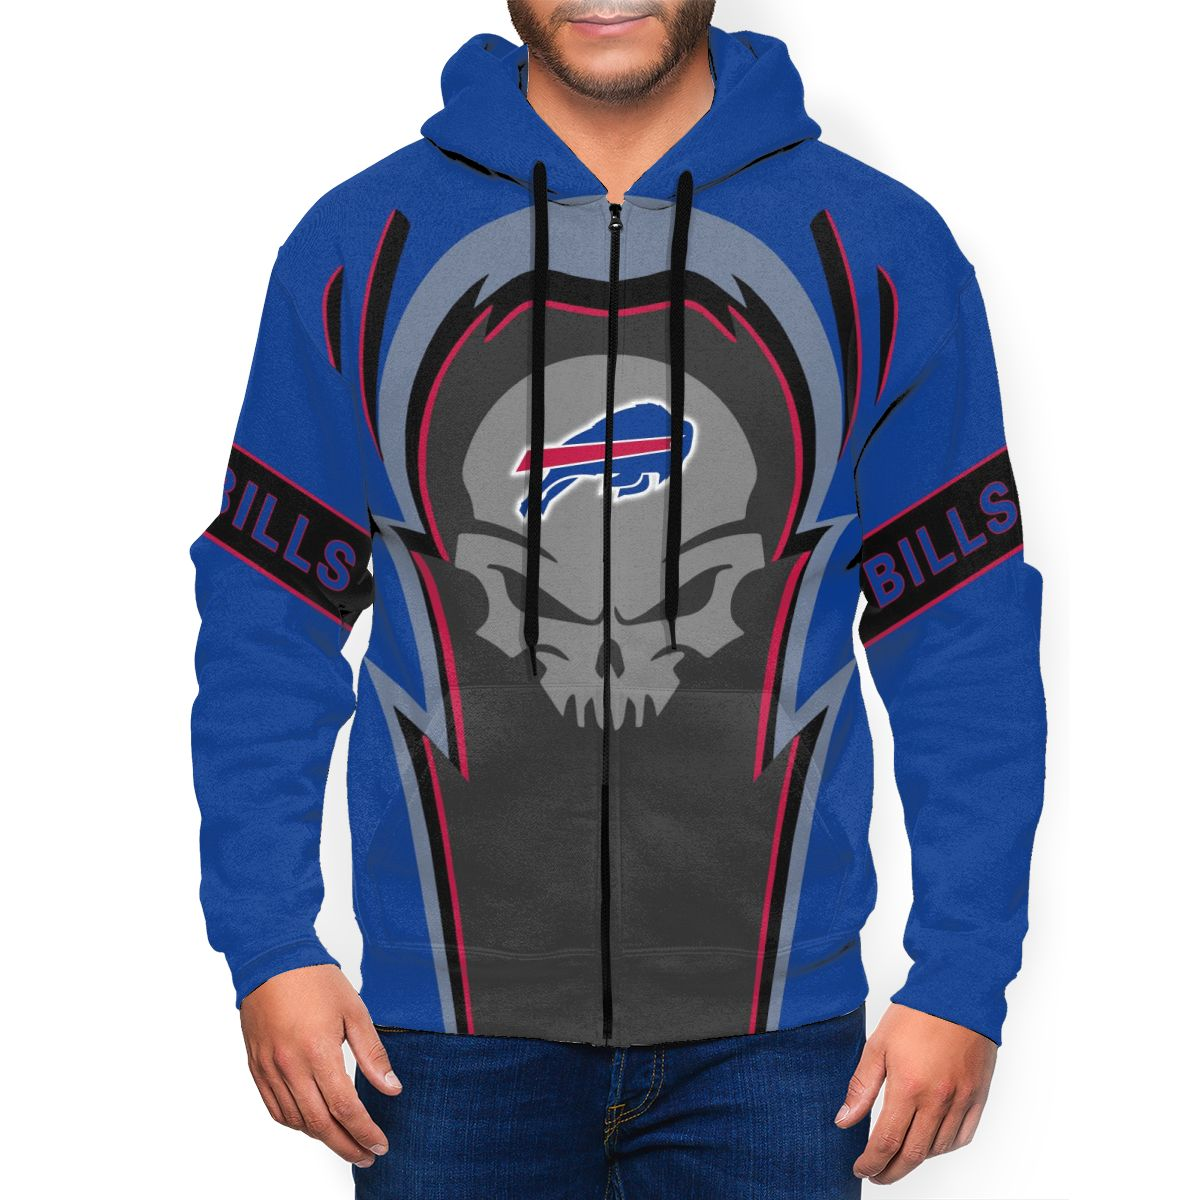 Bills Men's Zip Hooded Sweatshirt